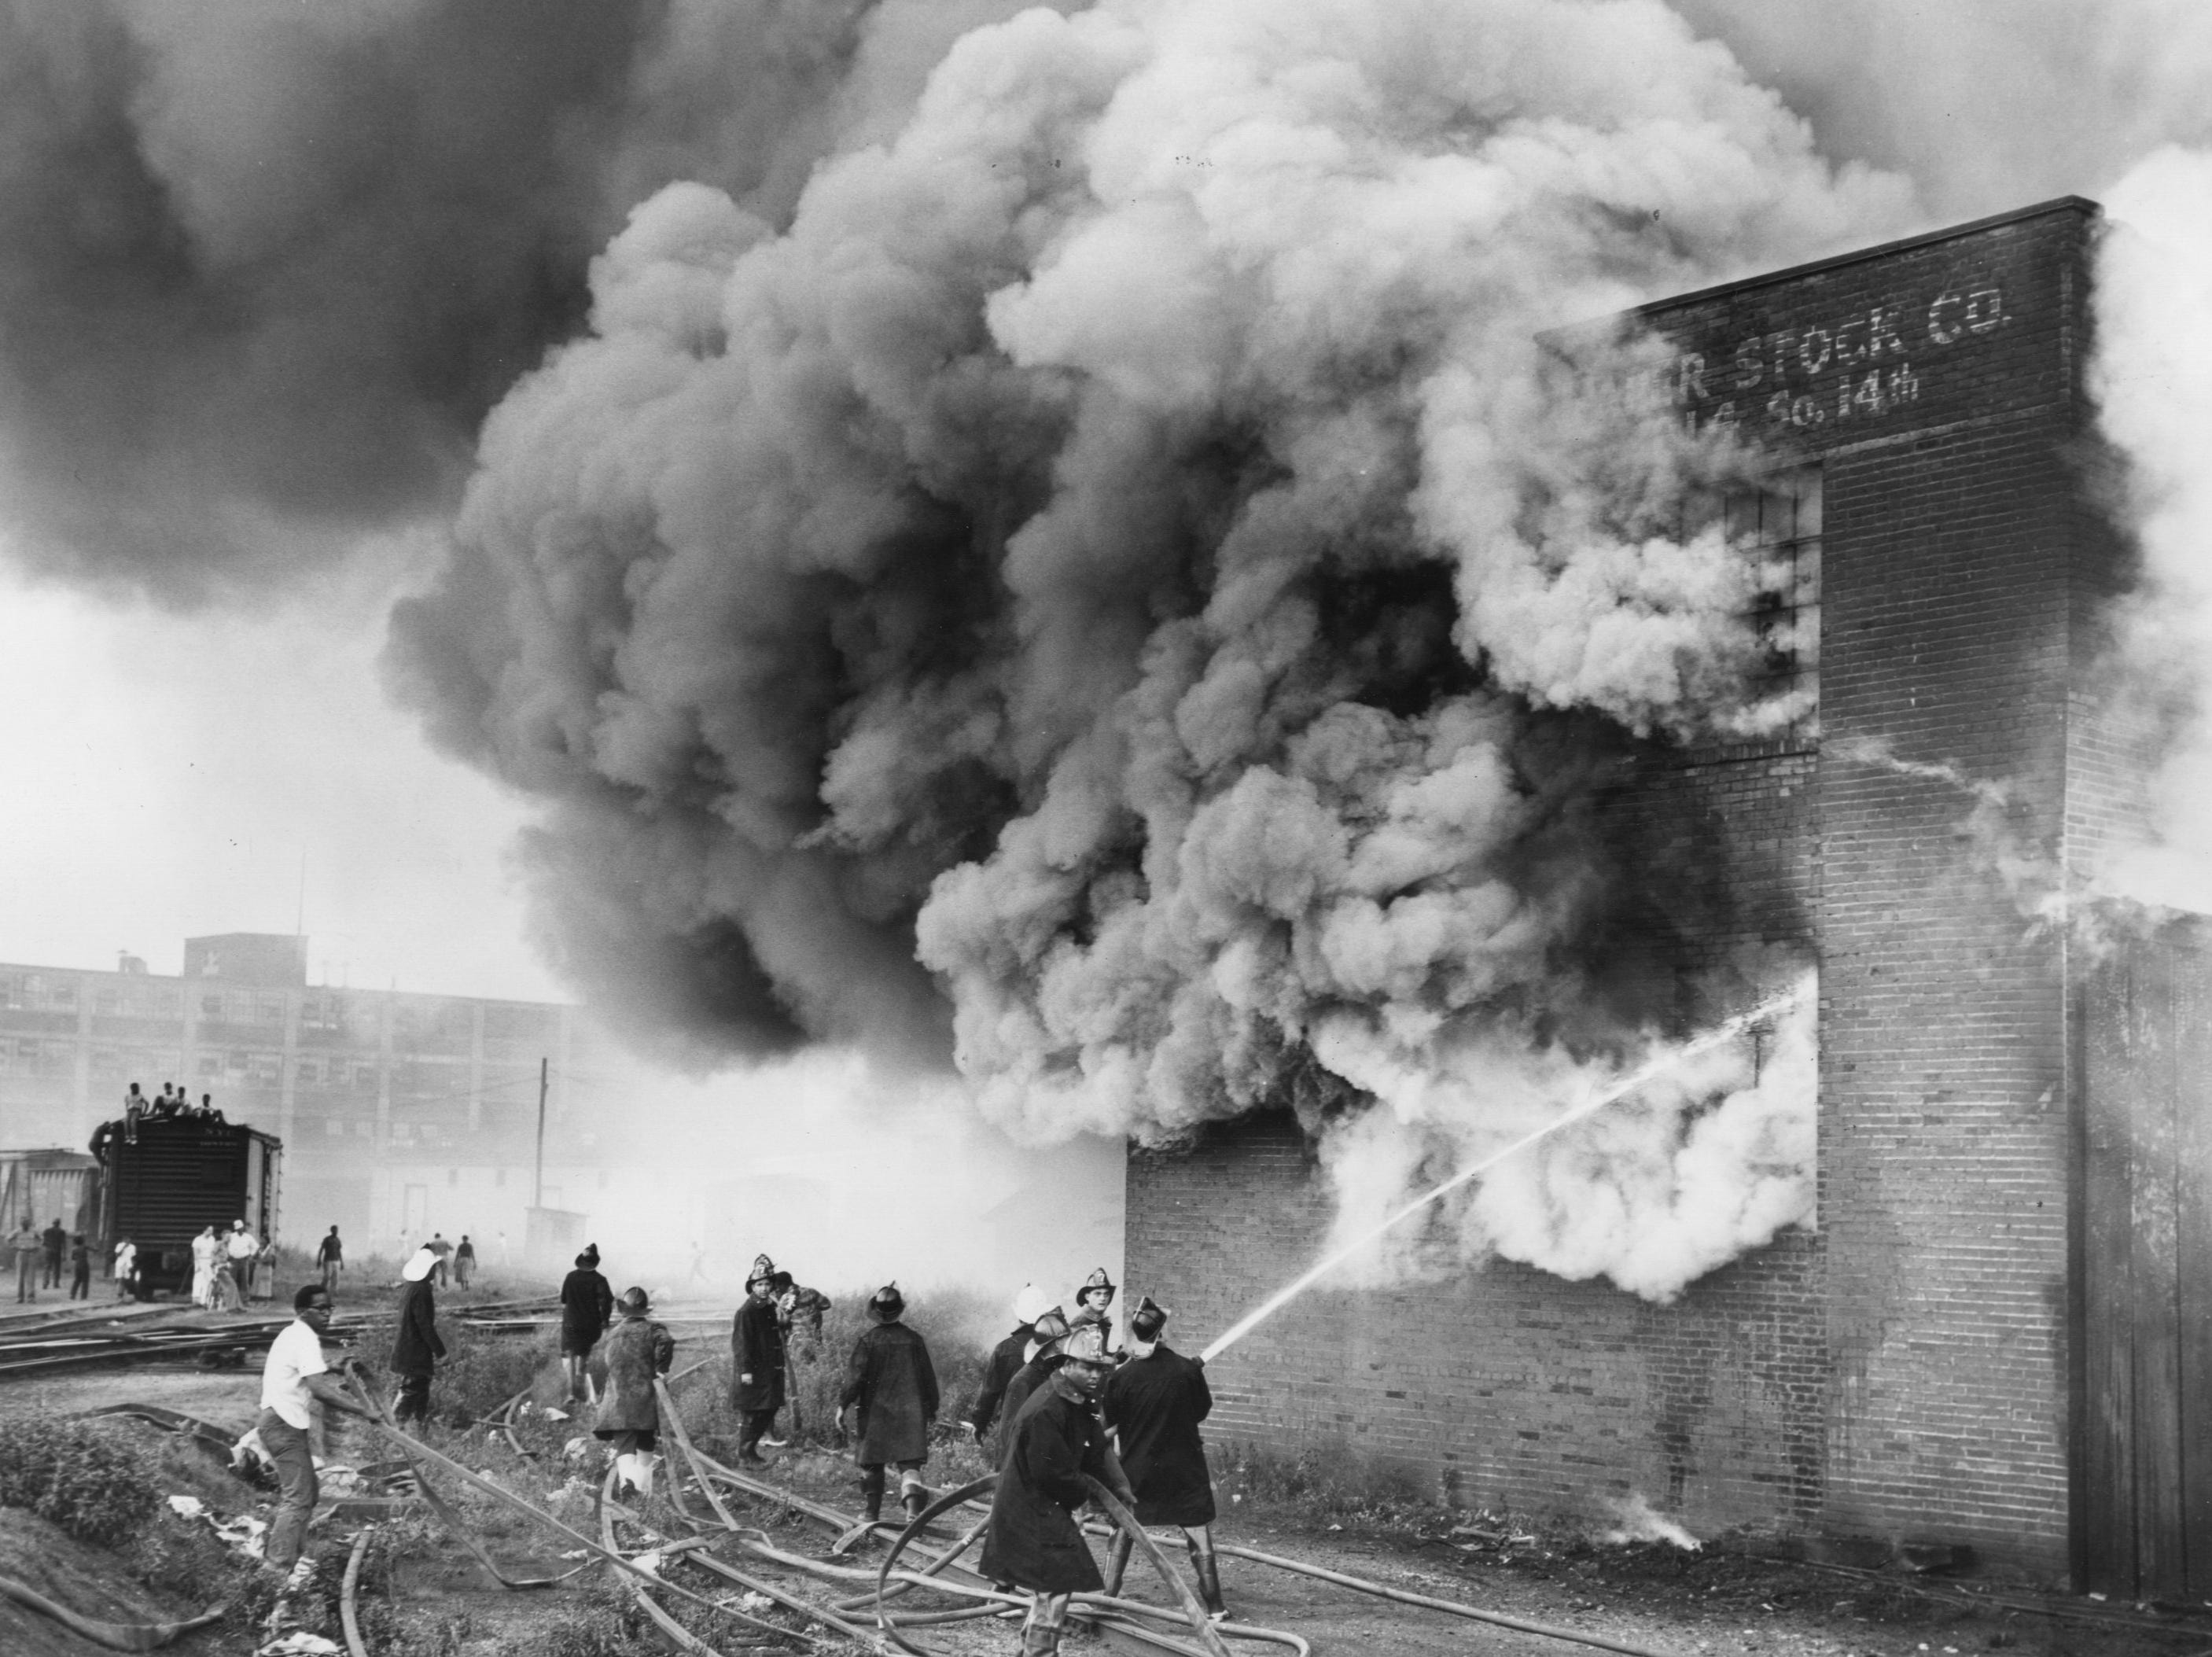 Firemen battle flames that destroyed the interior of the Sanders Paper Stock Company. 